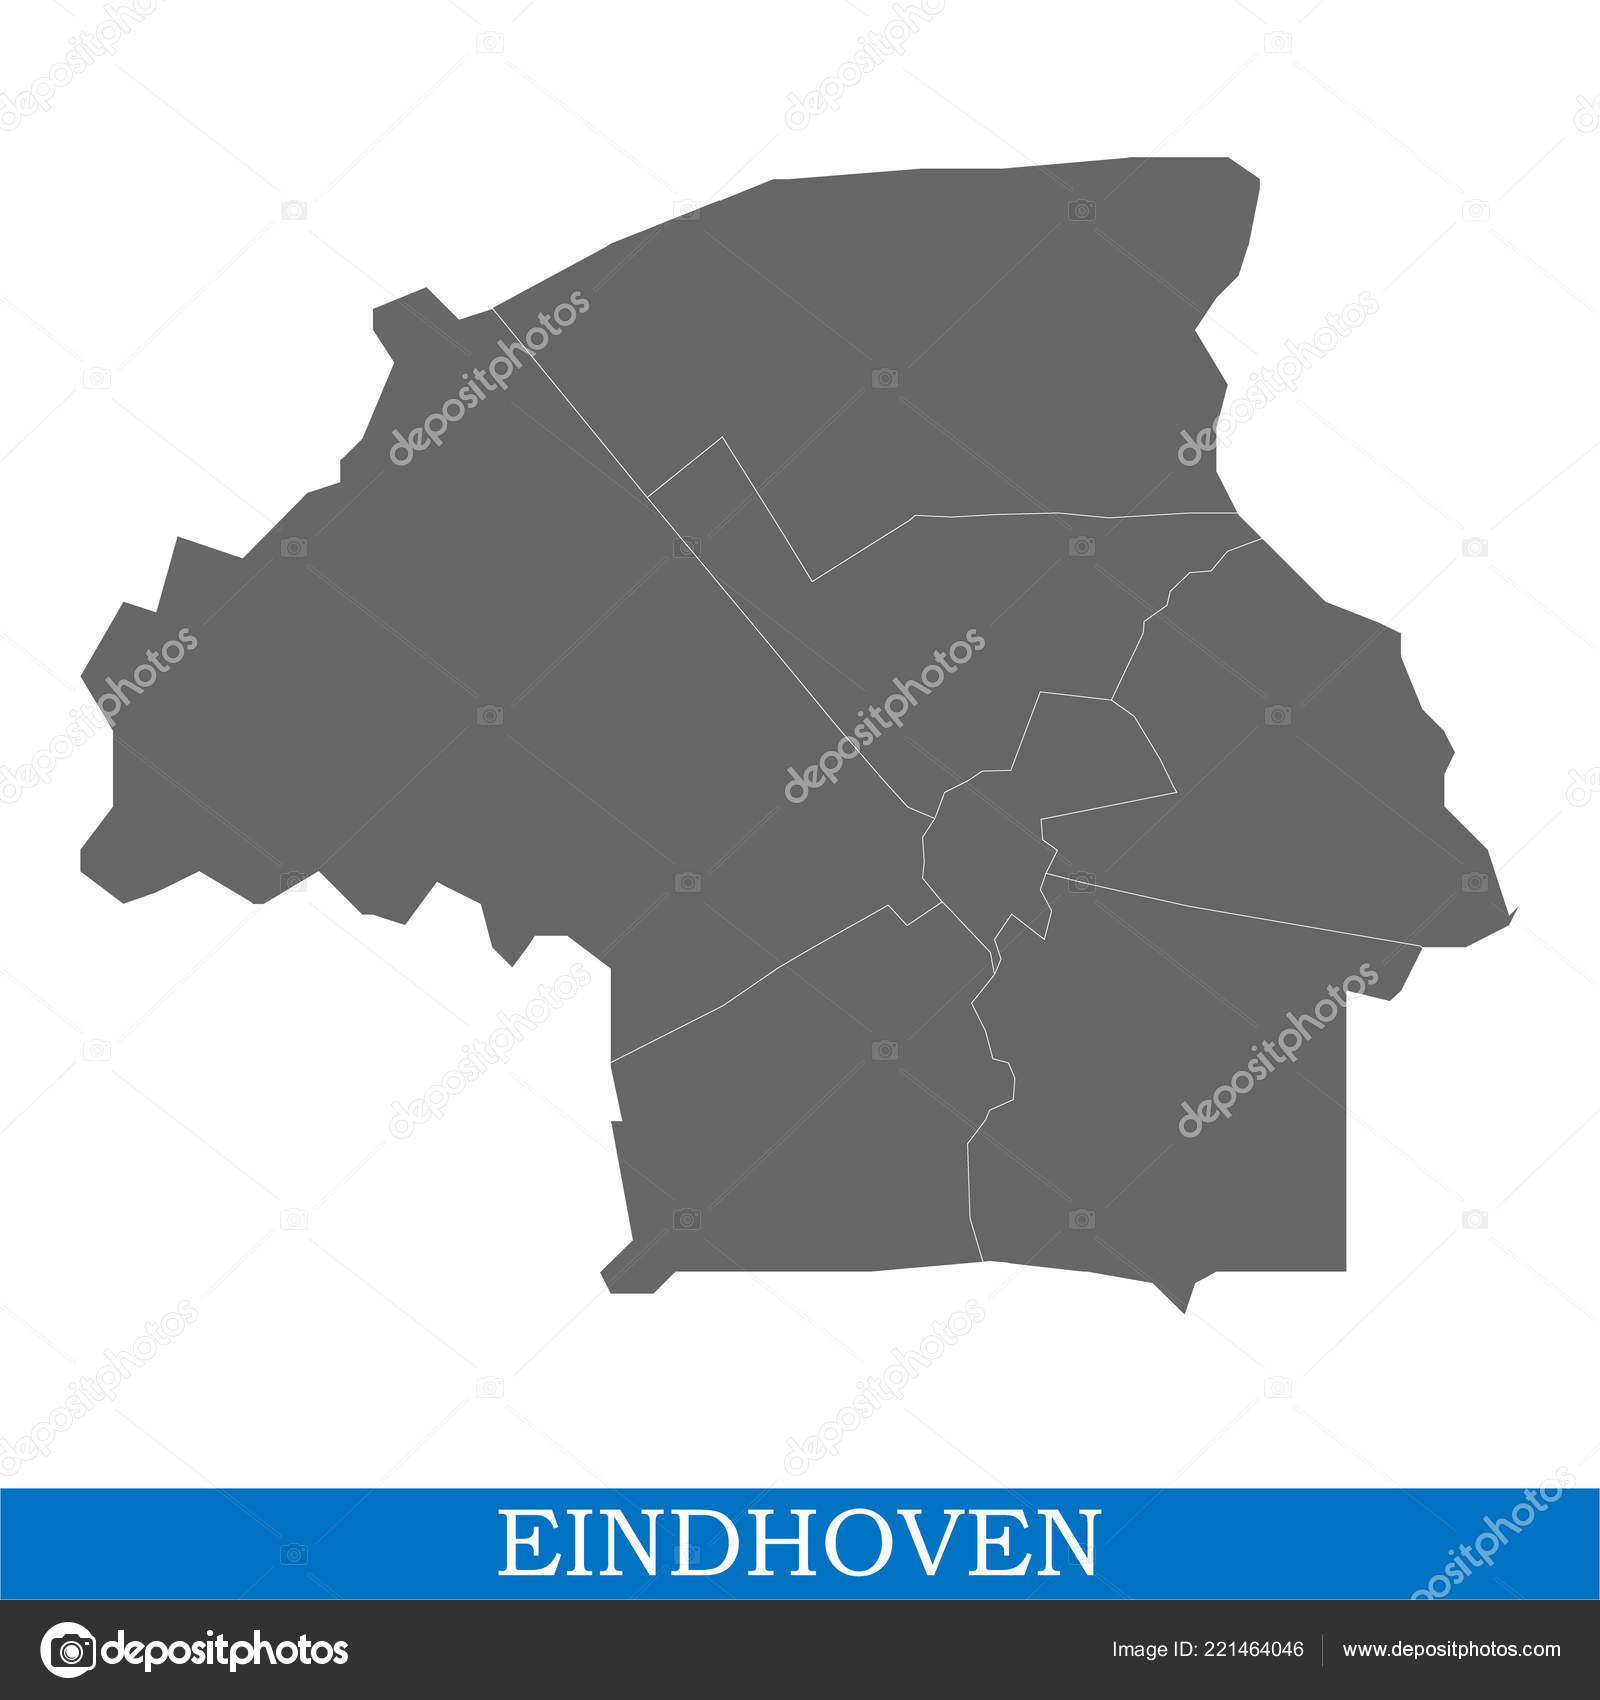 High Quality Map Eindhoven City Netherlands Borders ...